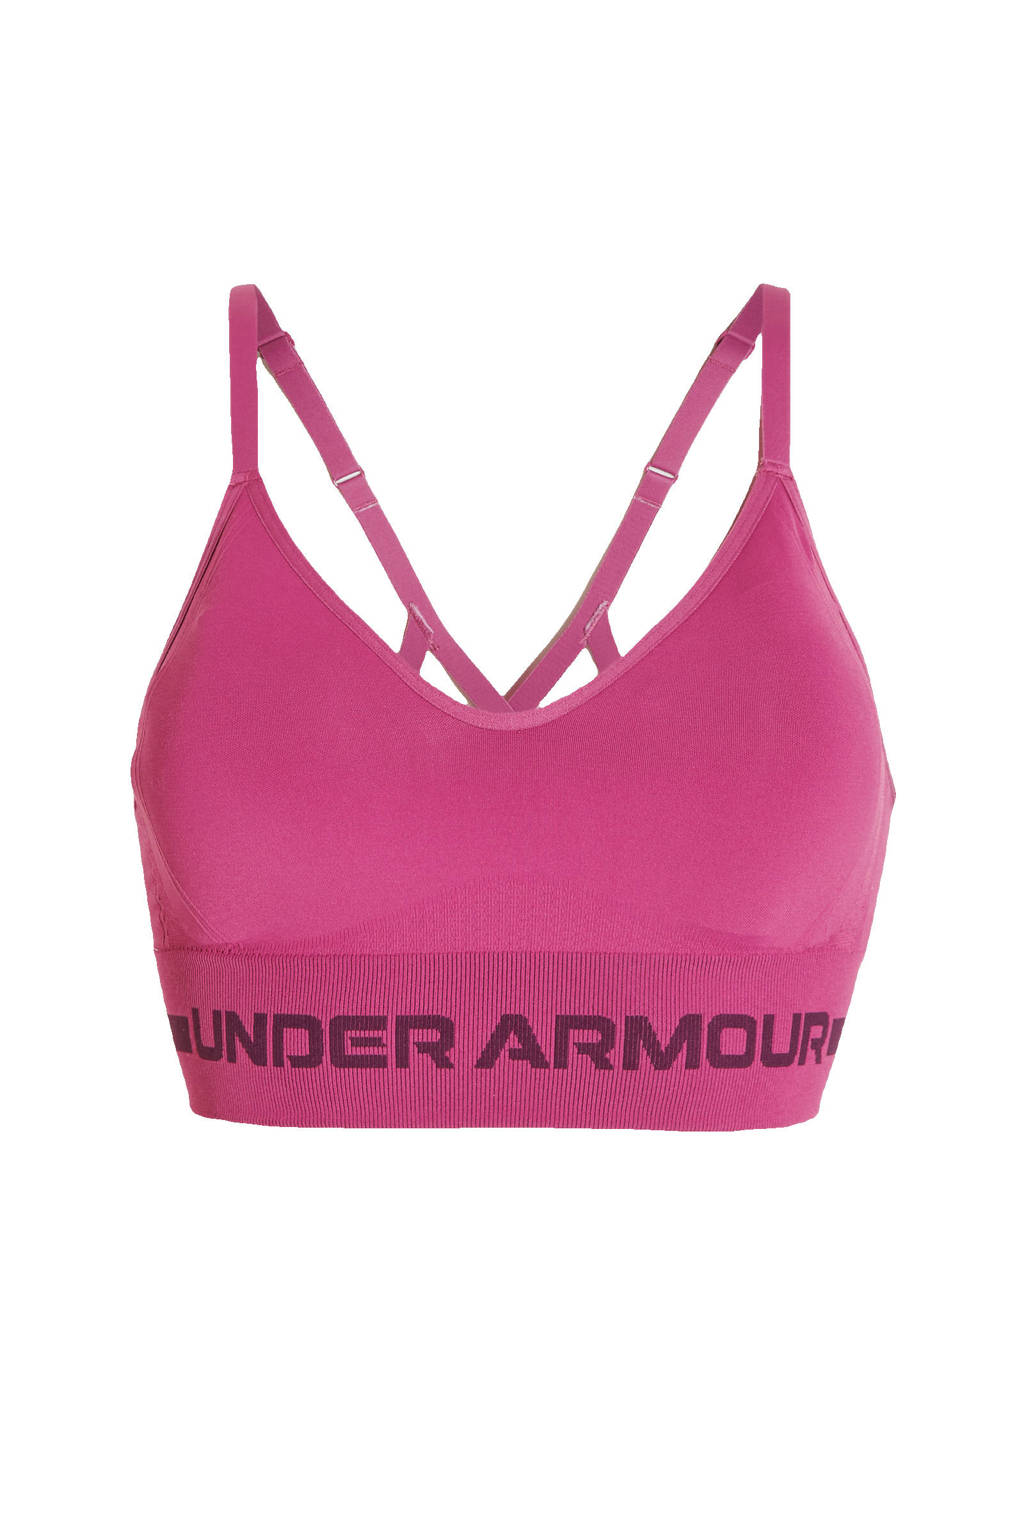 Under Armour level1 sportbh roze/paars, Roze/paars